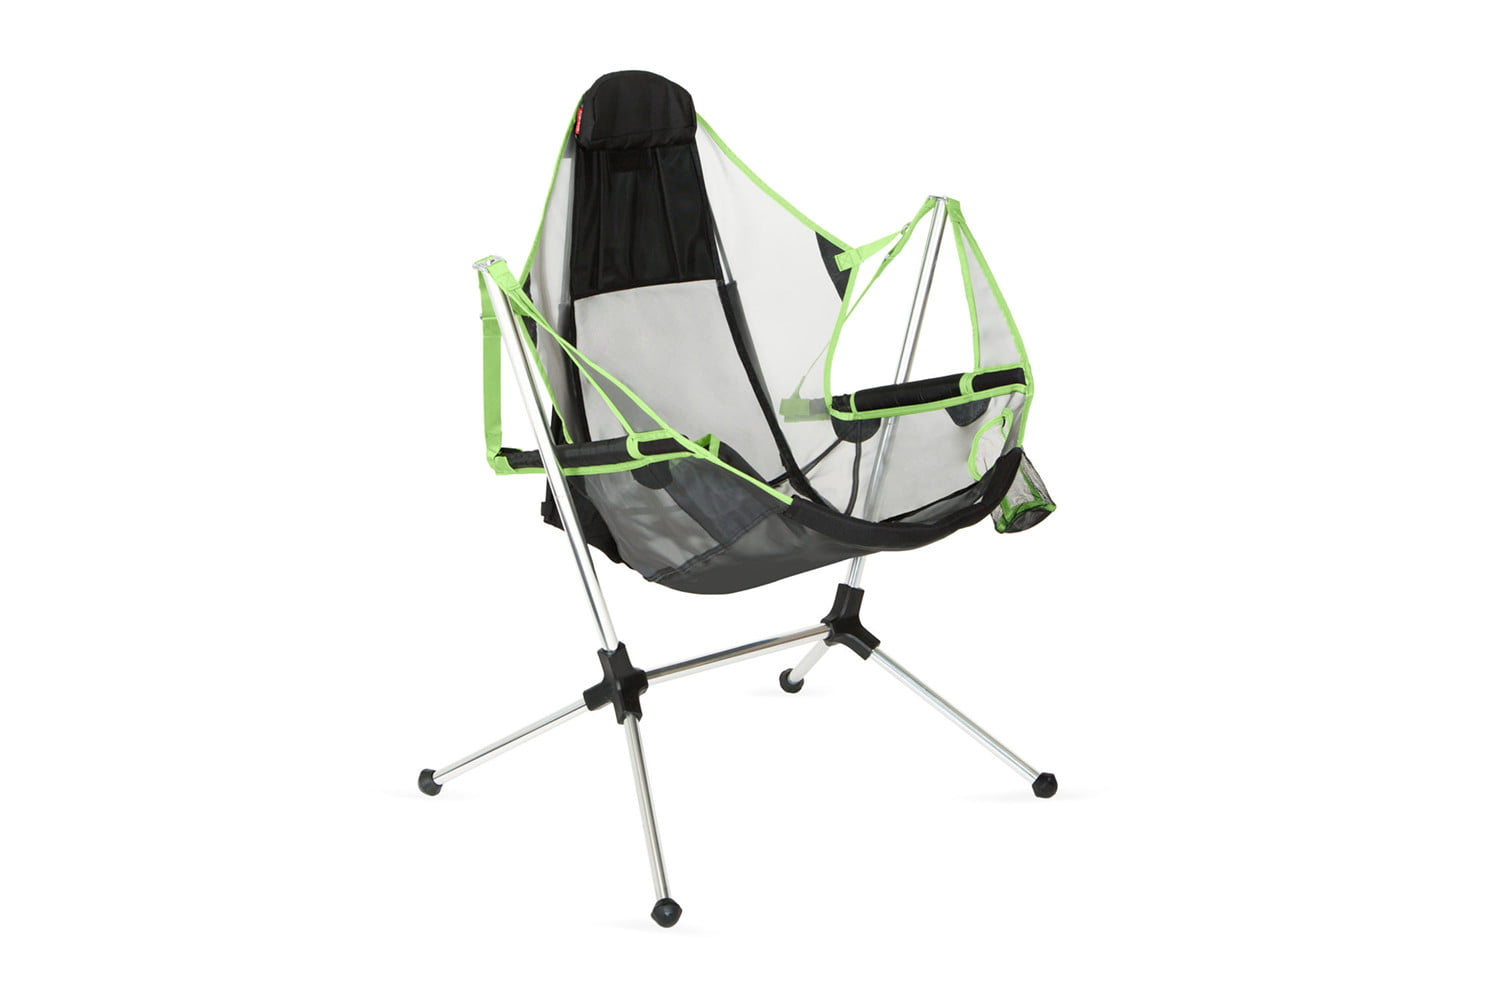 Most Comfortable Camping Chair The Best Camping Chairs For 2019 Digital Trends